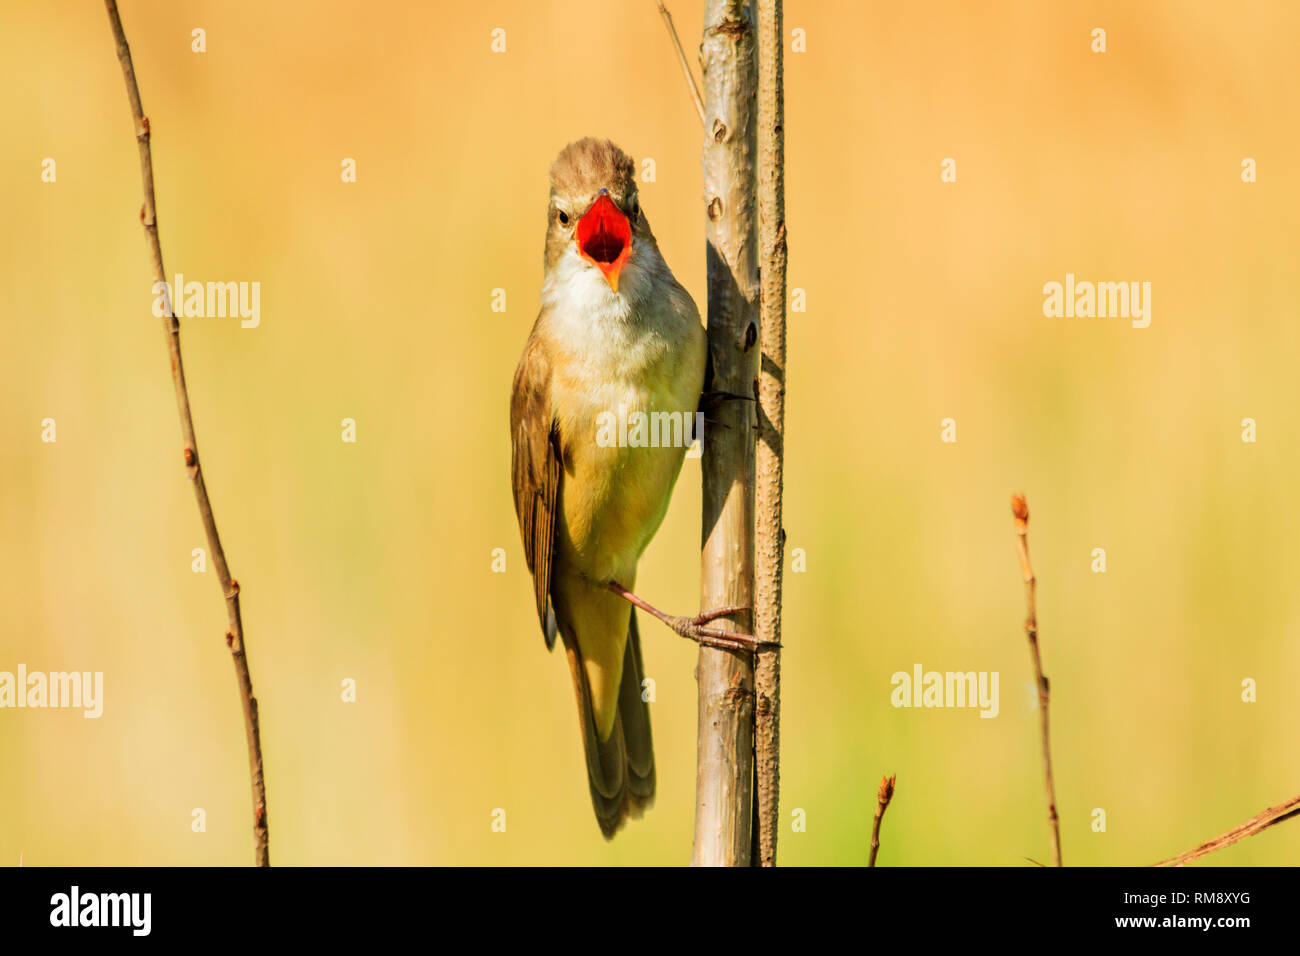 bird sits on a branch and sings loudly , spring period - Stock Image